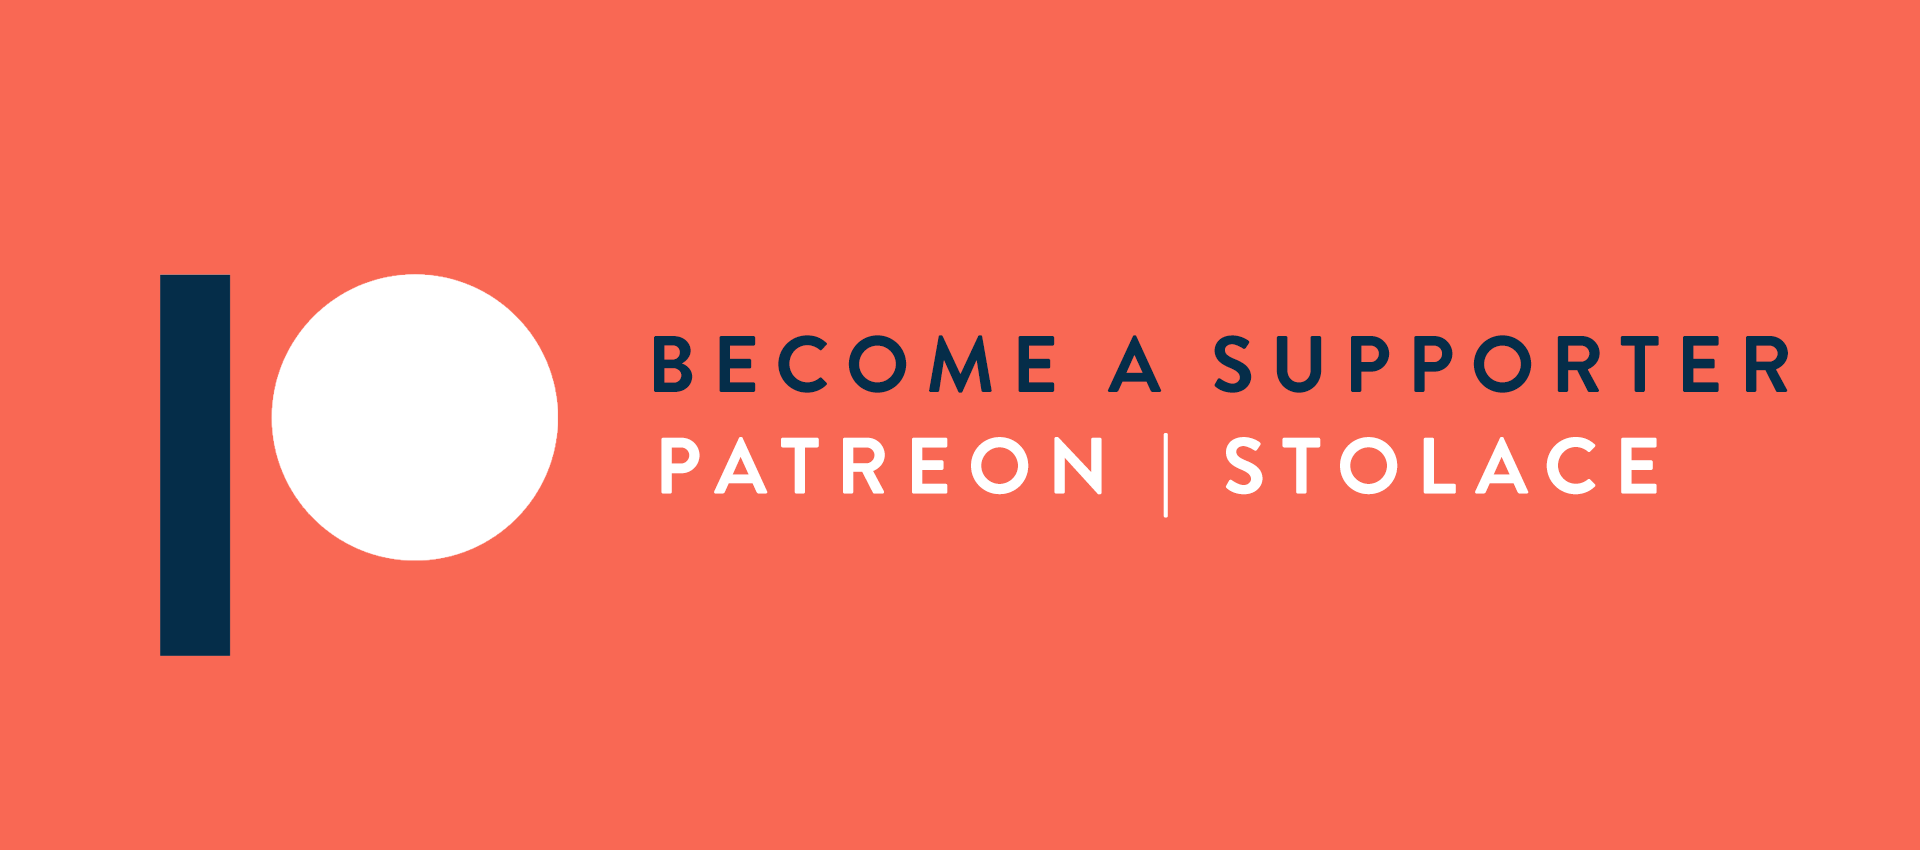 Become a Supporter at patreon.com / stolace